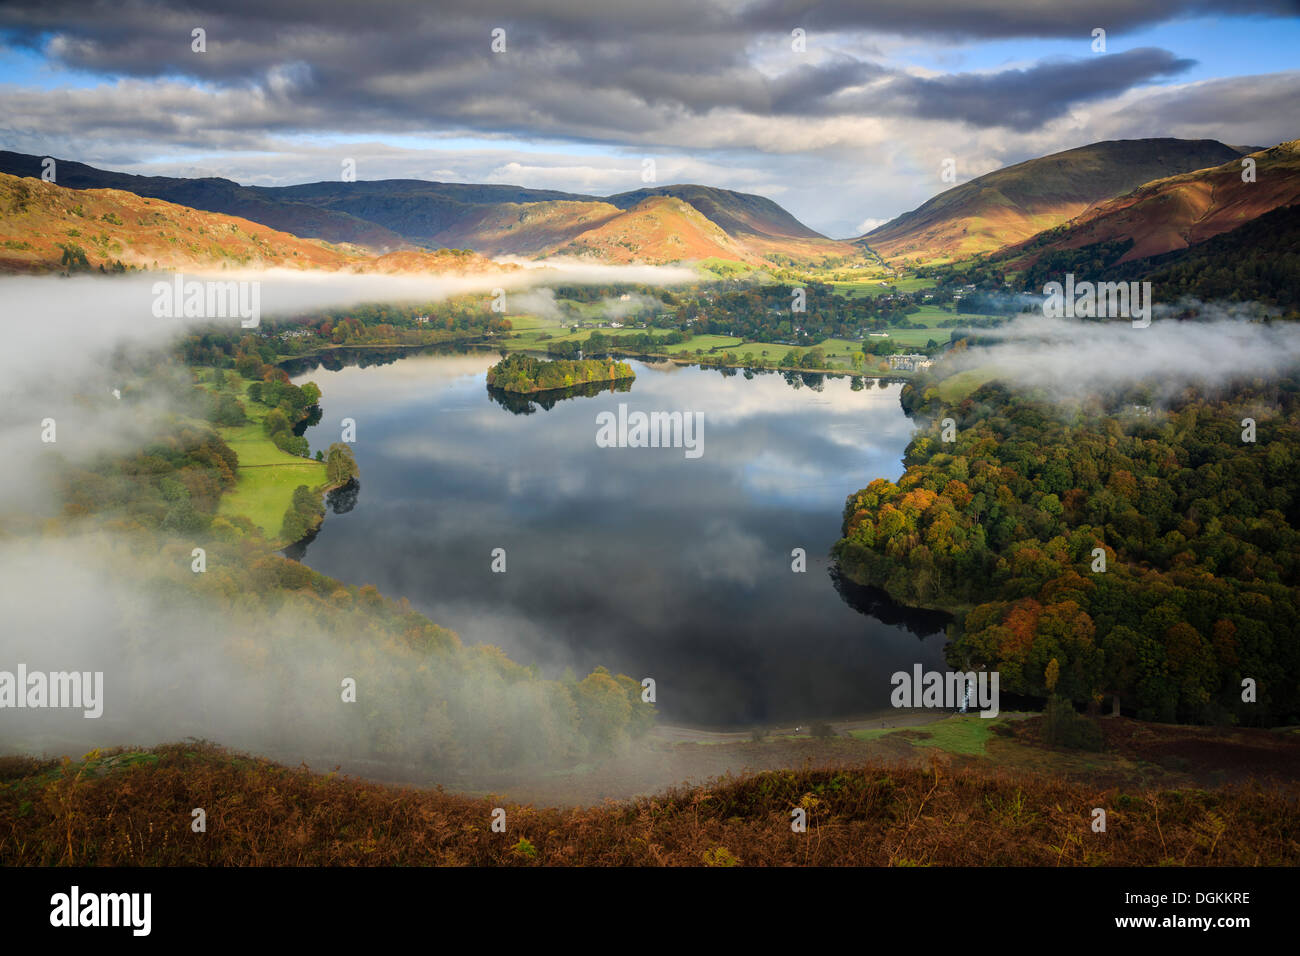 Mist clearing over Grasmere viewed from Loughrigg Hill. - Stock Image